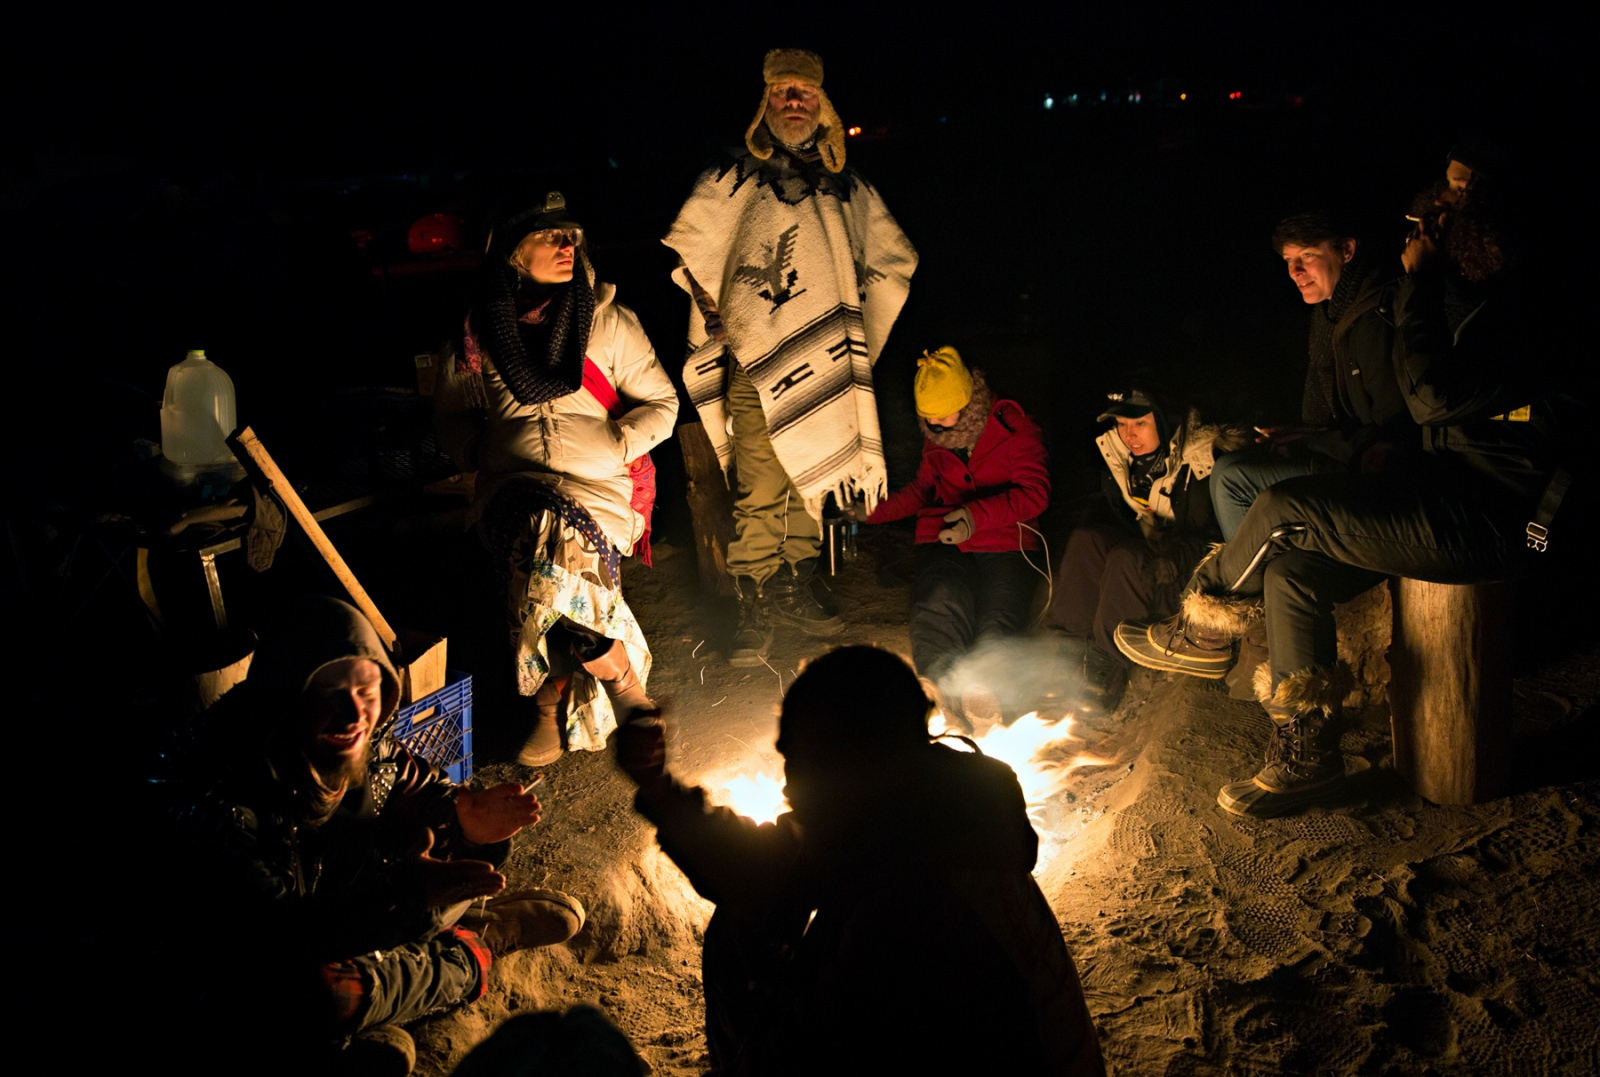 A group of volunteers gather around a camp fire singing and telling stories. At night, individual camps would be lit up by camp fires from the donated wood available for everyone's use. Many camps would welcome strangers to sit and enjoy the warmth of the camp fire and share in the meals they had prepared.